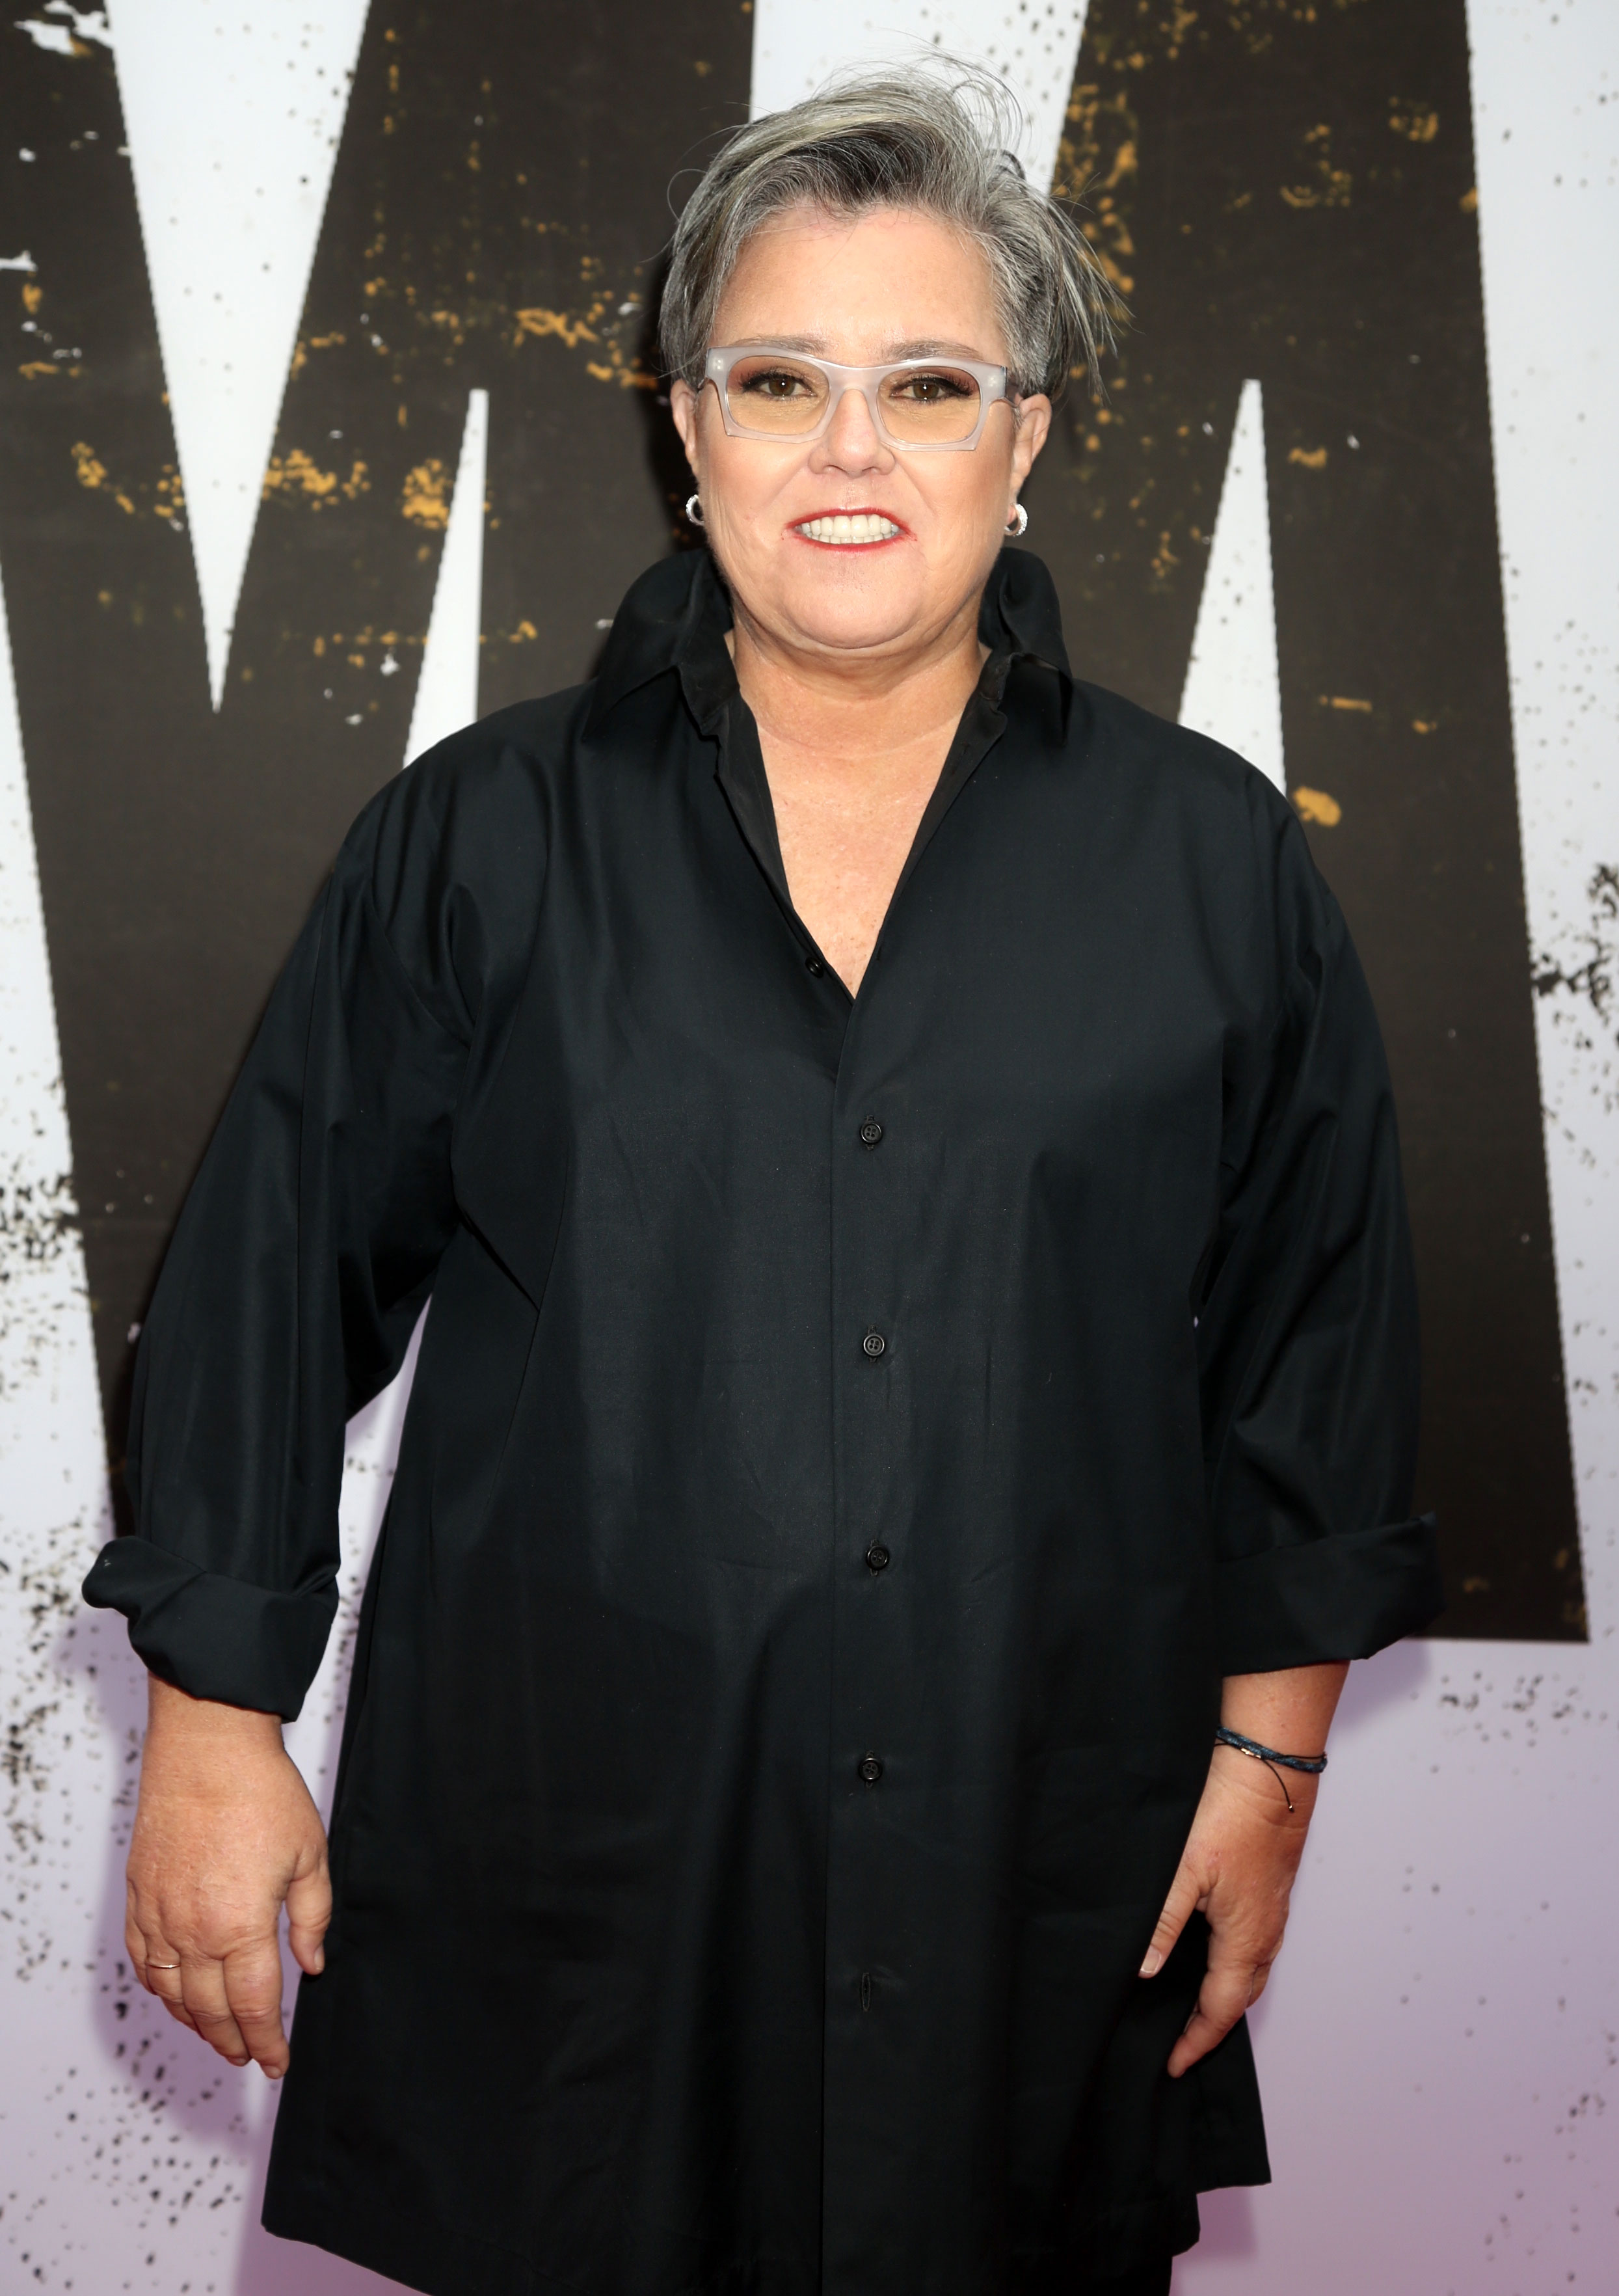 Rosie O'Donnell Says Participating in 'The View' Book Is Her 'Biggest Regret' - Rosie O'Donnell at the opening night for Rodgers and Hammerstein's 'Oklahoma' on Broadway on April 7, 2019 in New York City.